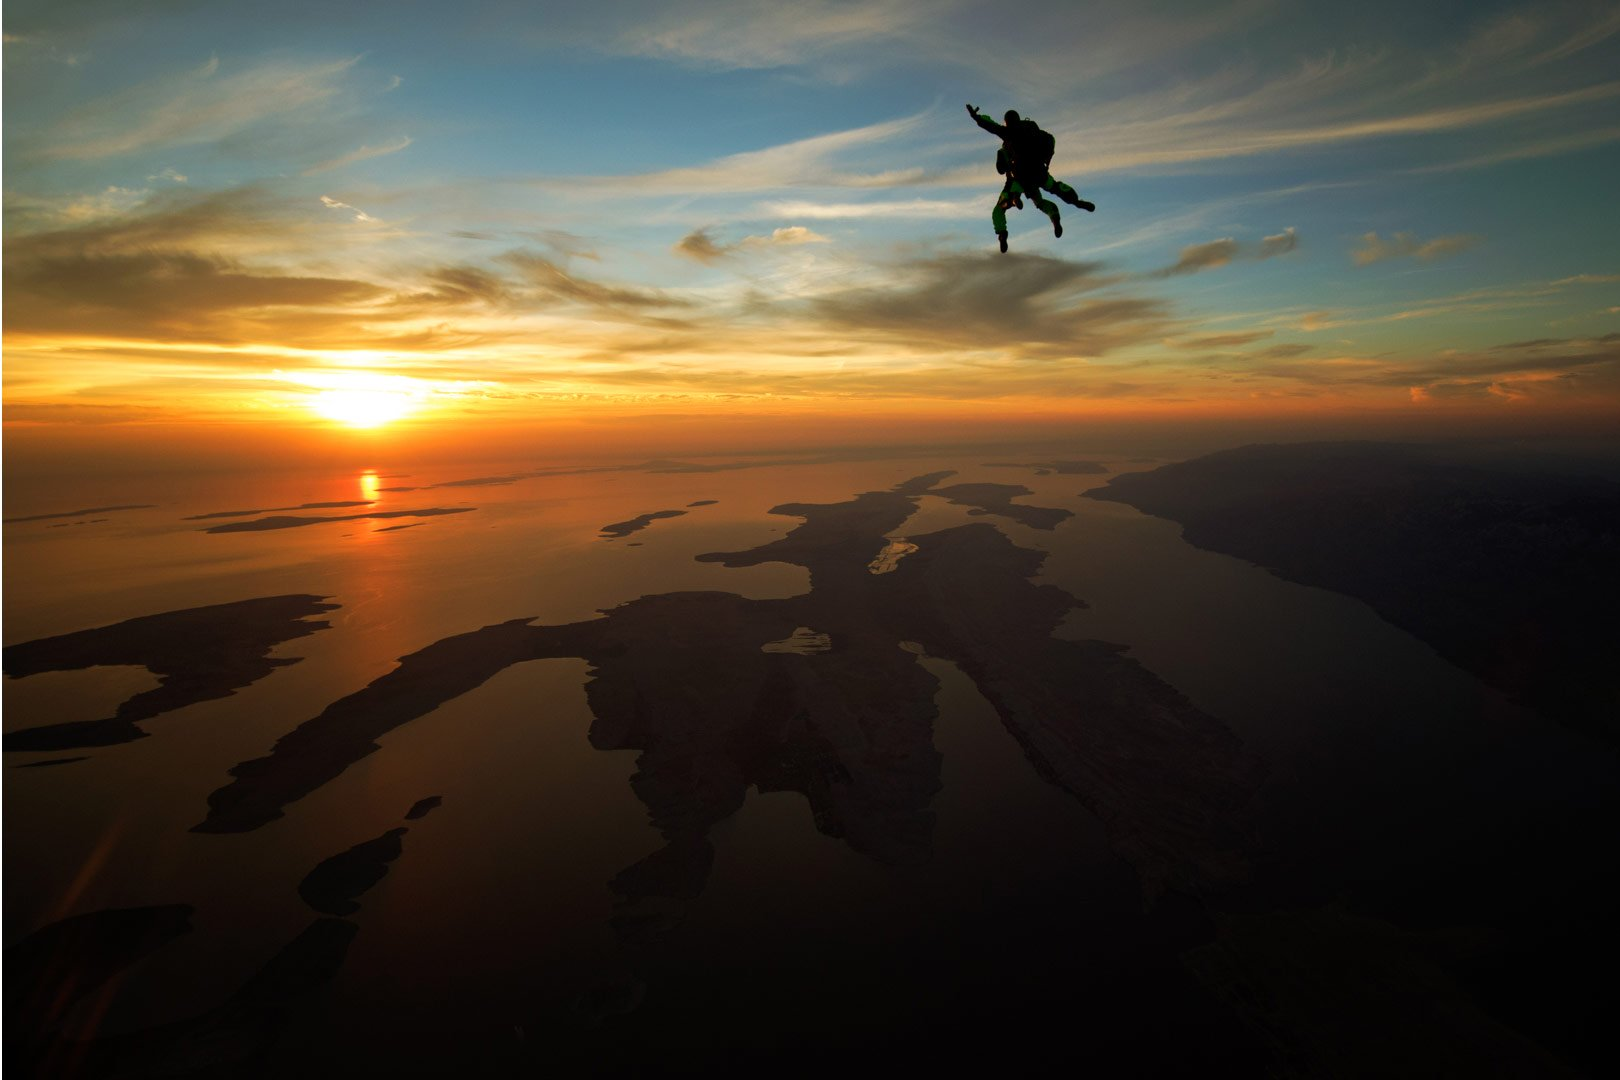 xsunset-skydiving-zadar.jpg.pagespeed.ic.ExdtzzoYpy